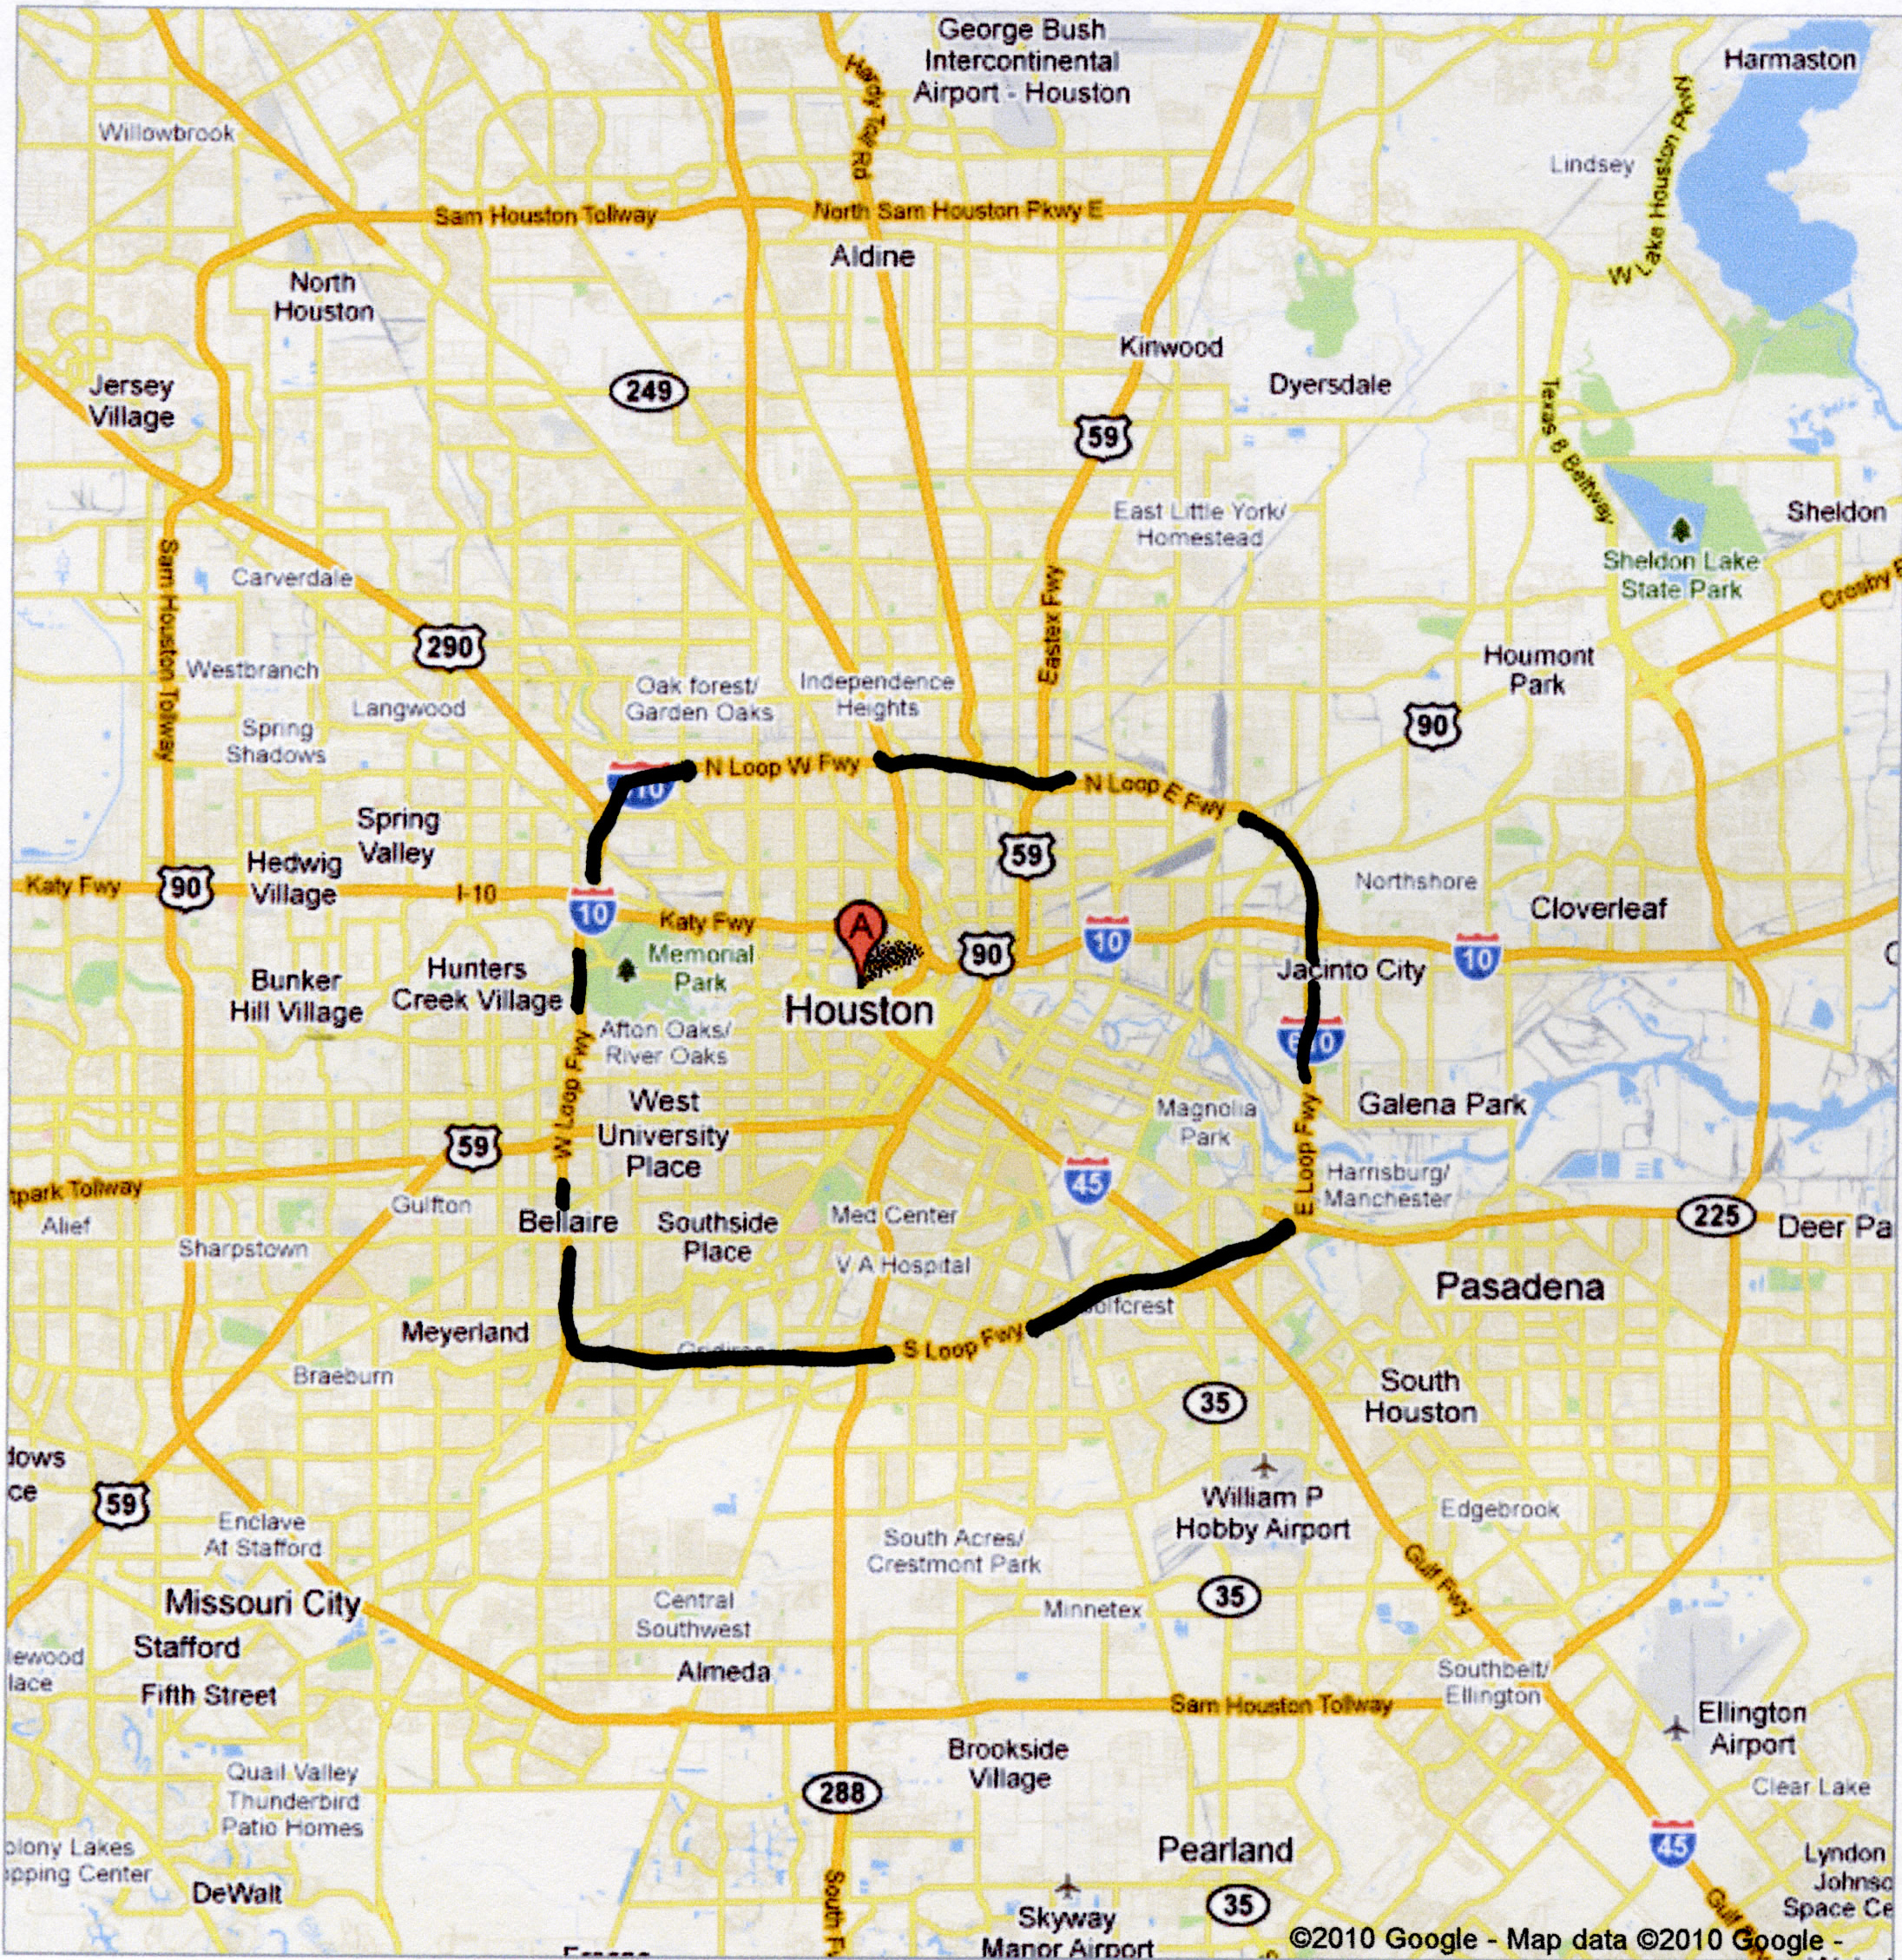 map of houston Map Pictures